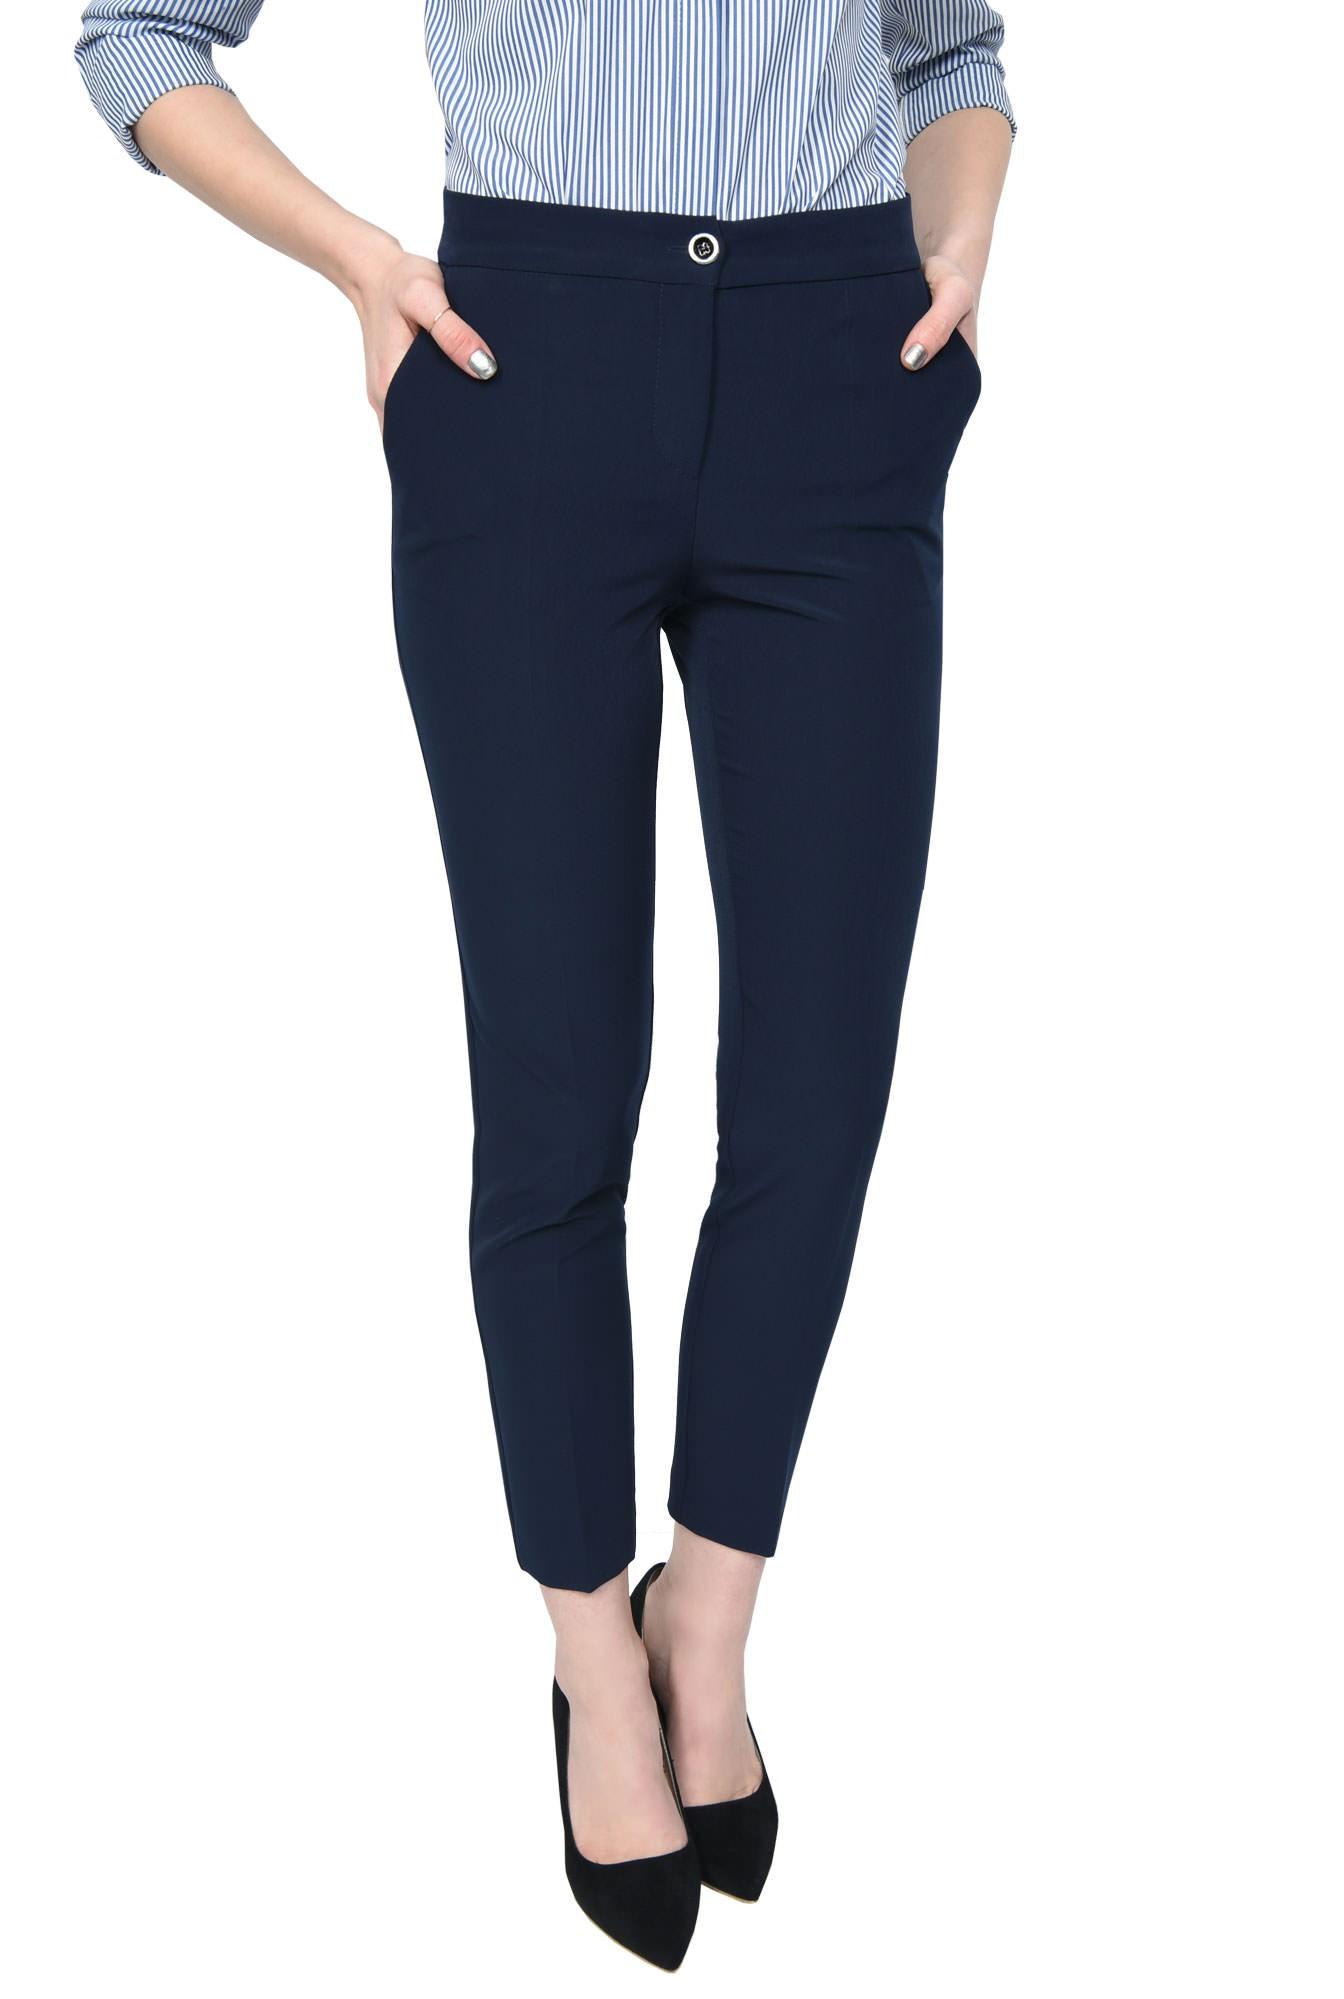 PANTALON OFFICE CONIC PT 133-BLEUMARIN